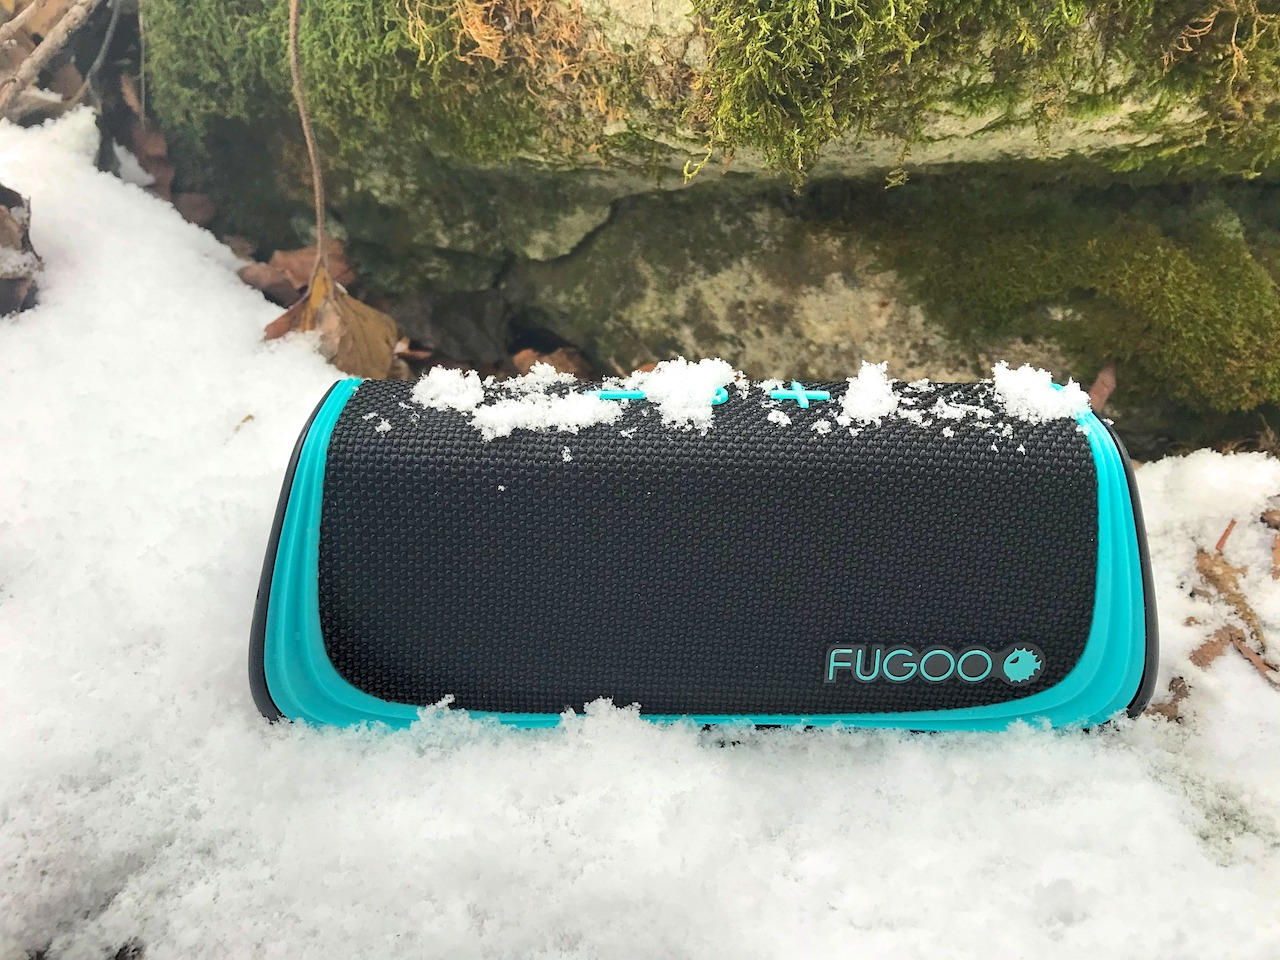 Fugoo-2.0-Series-Affordable-Awesome-Bluetooth-Speakers-Sport-2.0-snow